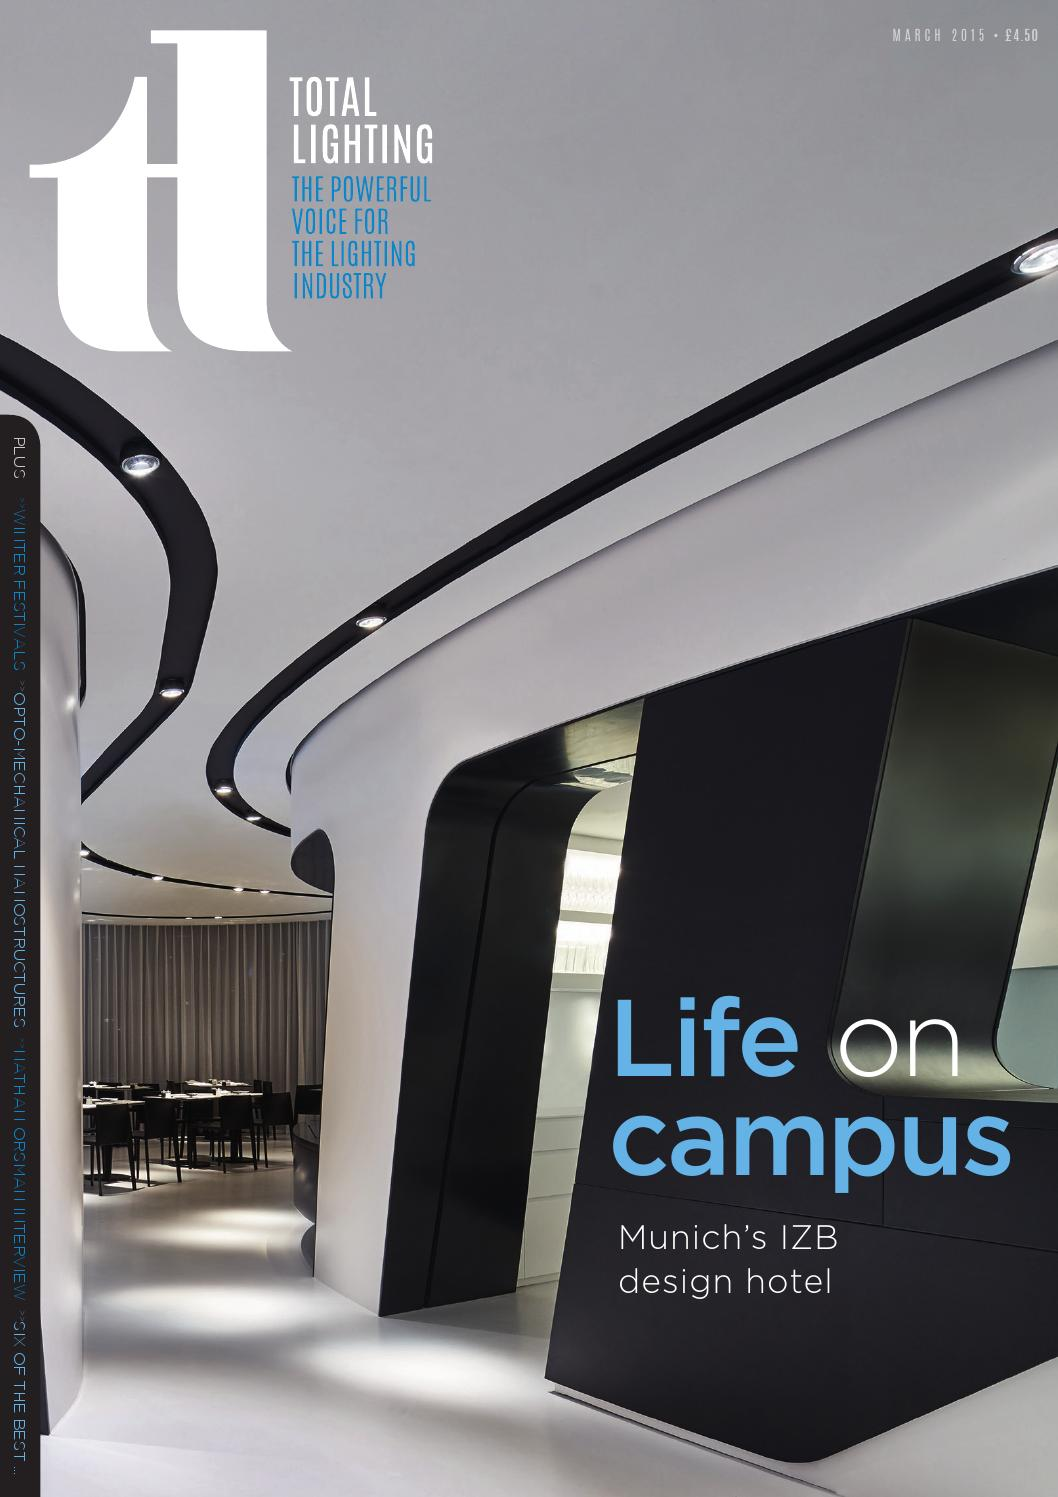 Total Lighting march 2015 by Total Lighting Magazine - issuu